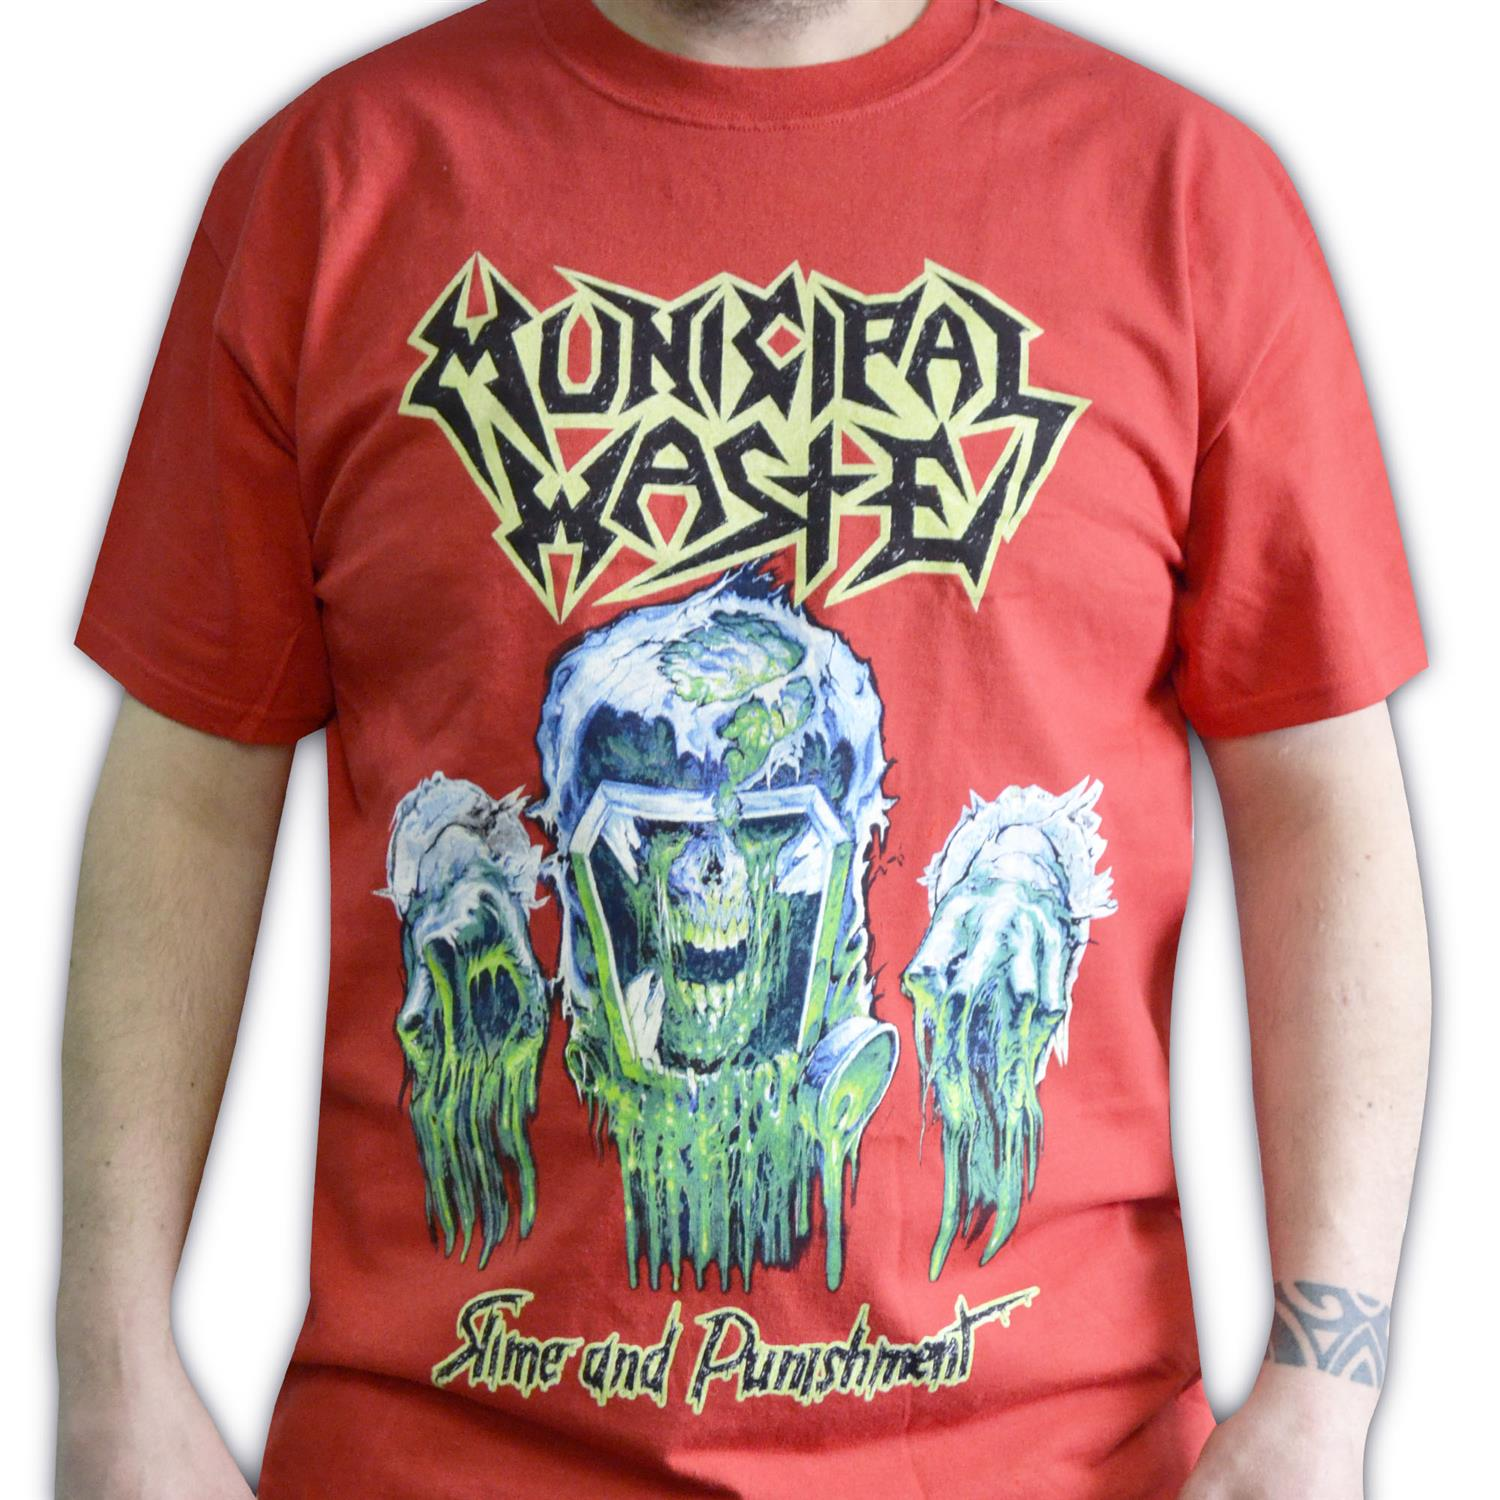 Slime And Punishment T-Shirt